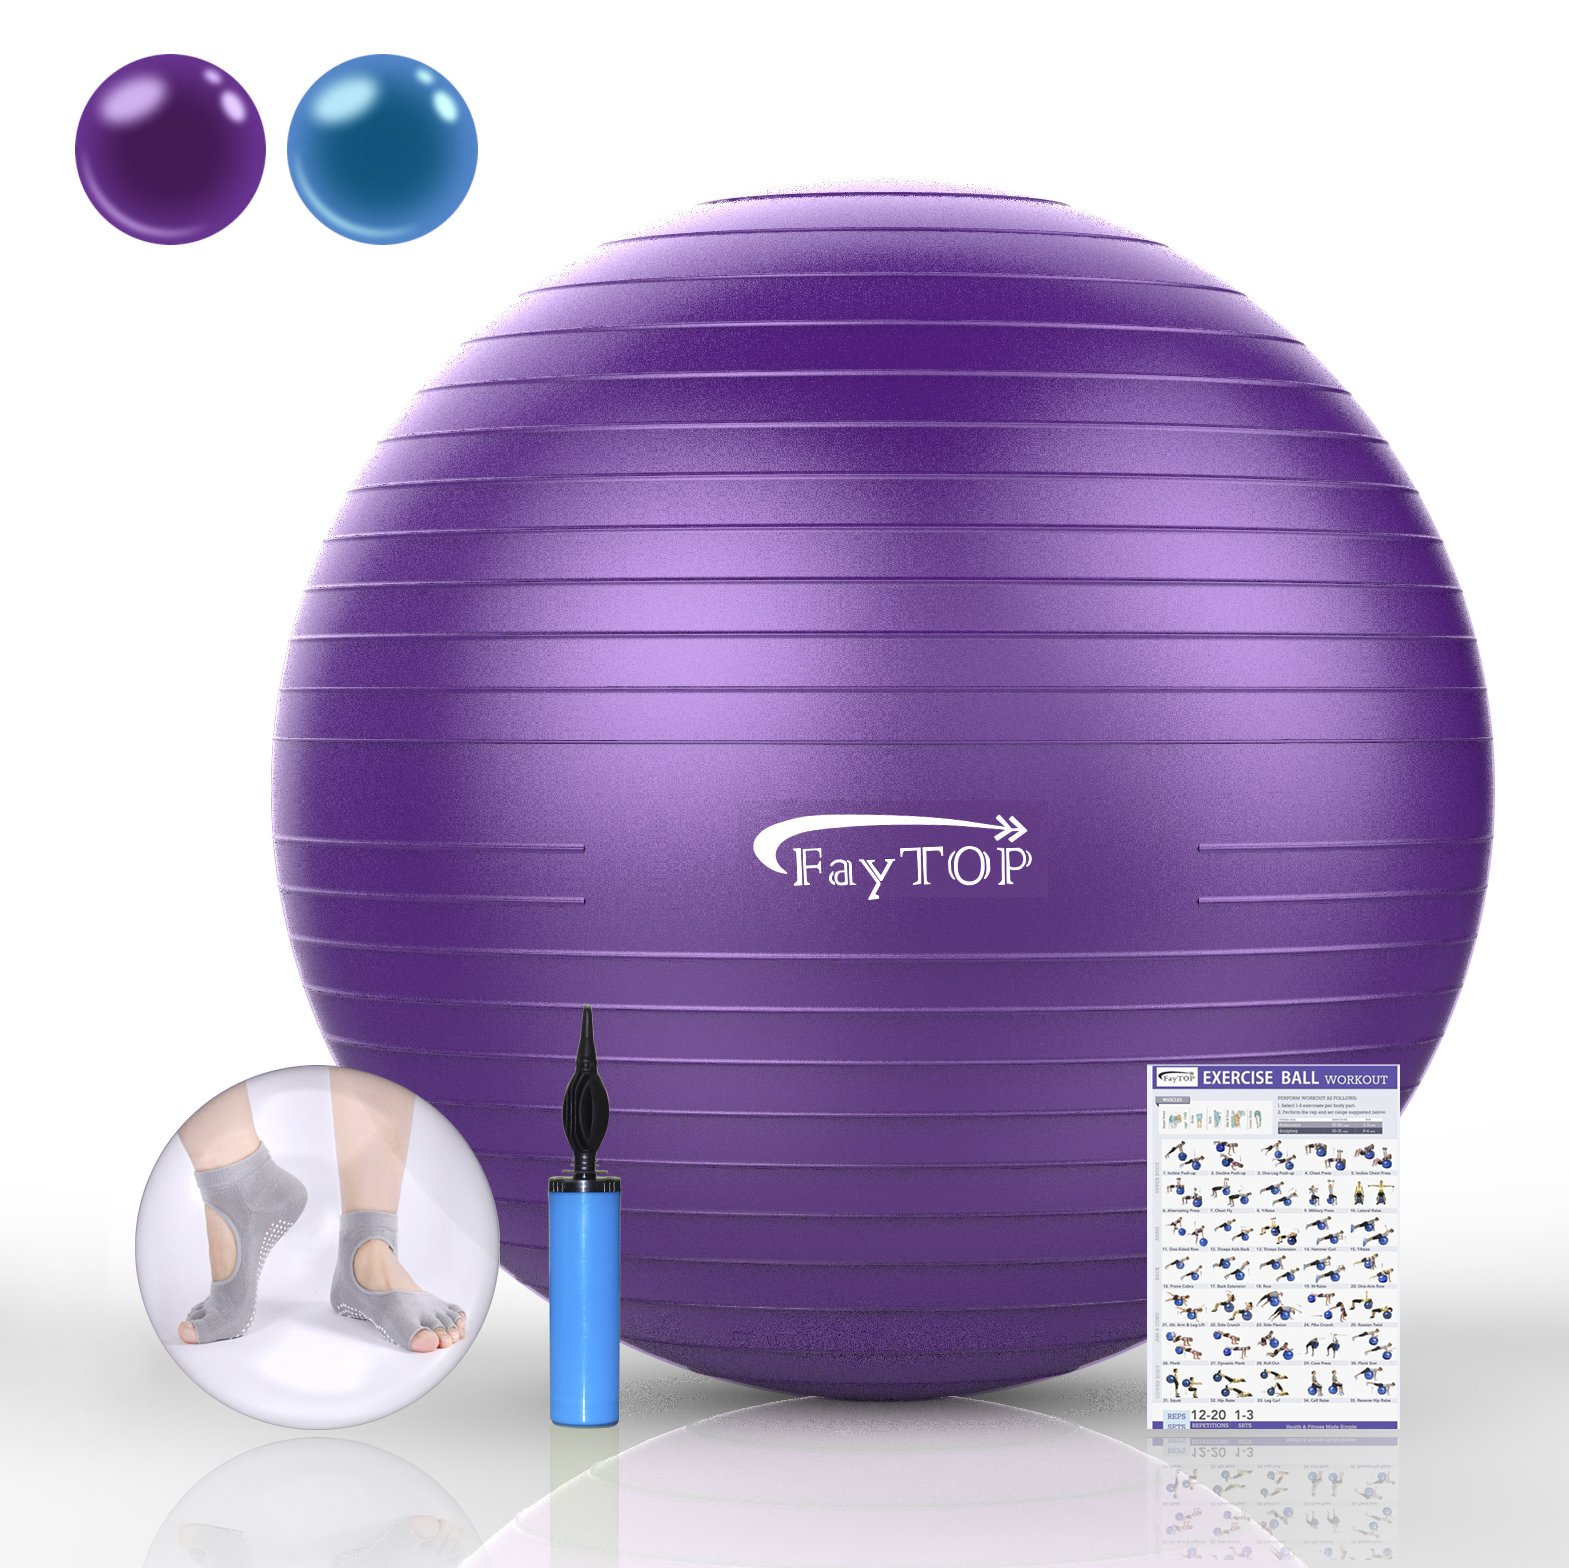 FayTOP 65cm Exercise Ball EXTRA THICK Frosted Surface 2200lb Capacity -Stability Ball, Yoga Ball, Birth Ball, Balance Ball, Pilates Ball, Fitness Ball -Includes: Yoga Socks, User Manual, Quick Pump